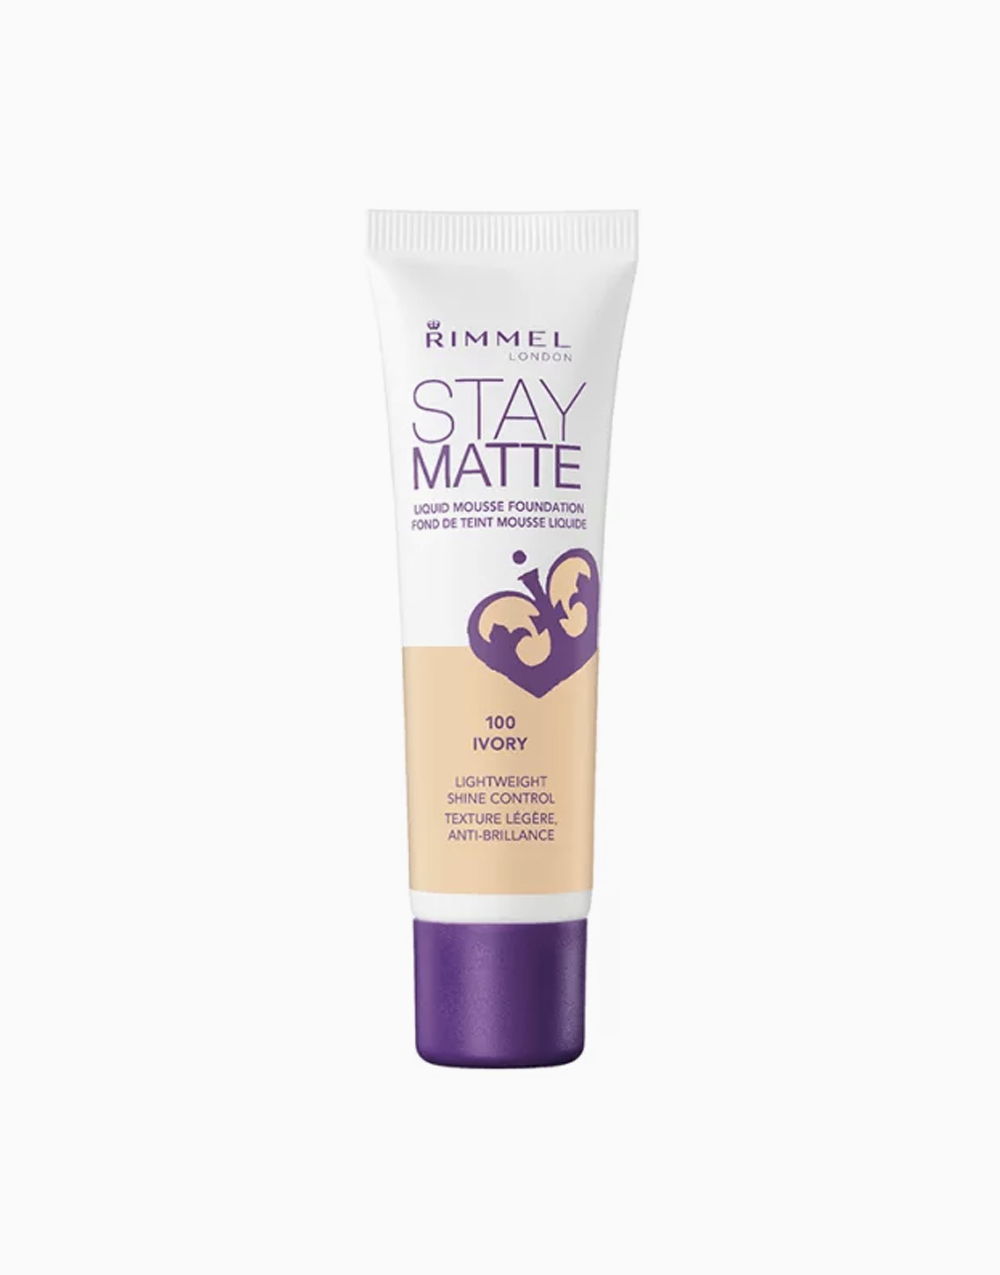 Stay Matte Mousse Foundation by Rimmel | Ivory